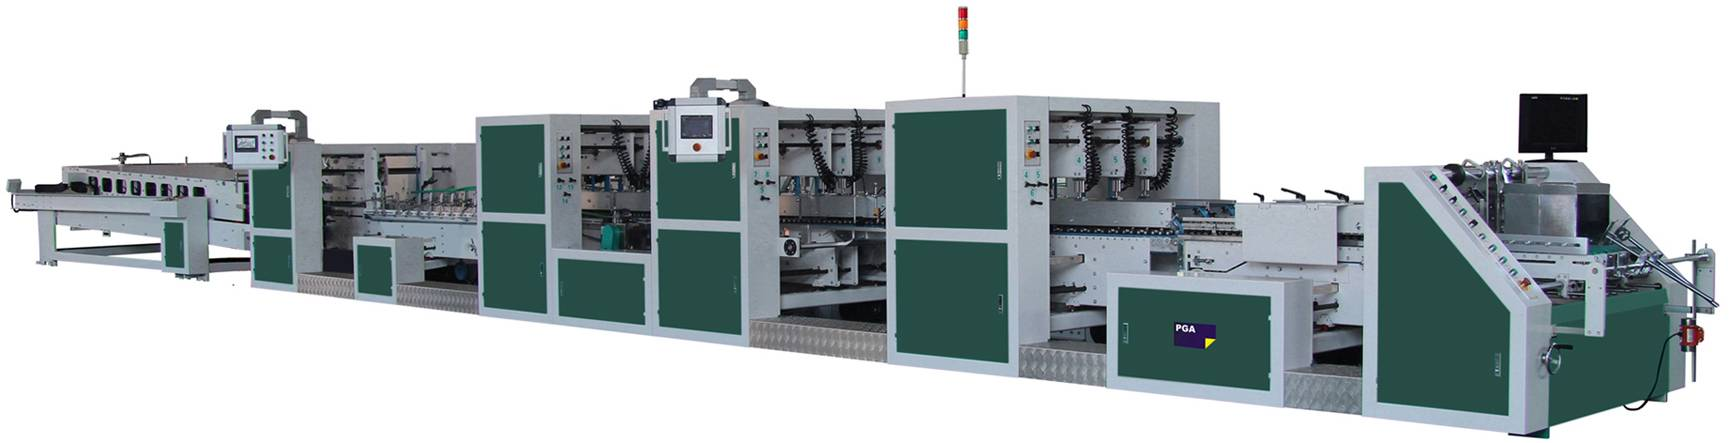 Automatic Folder Gluer Machine (BGM-1650A)